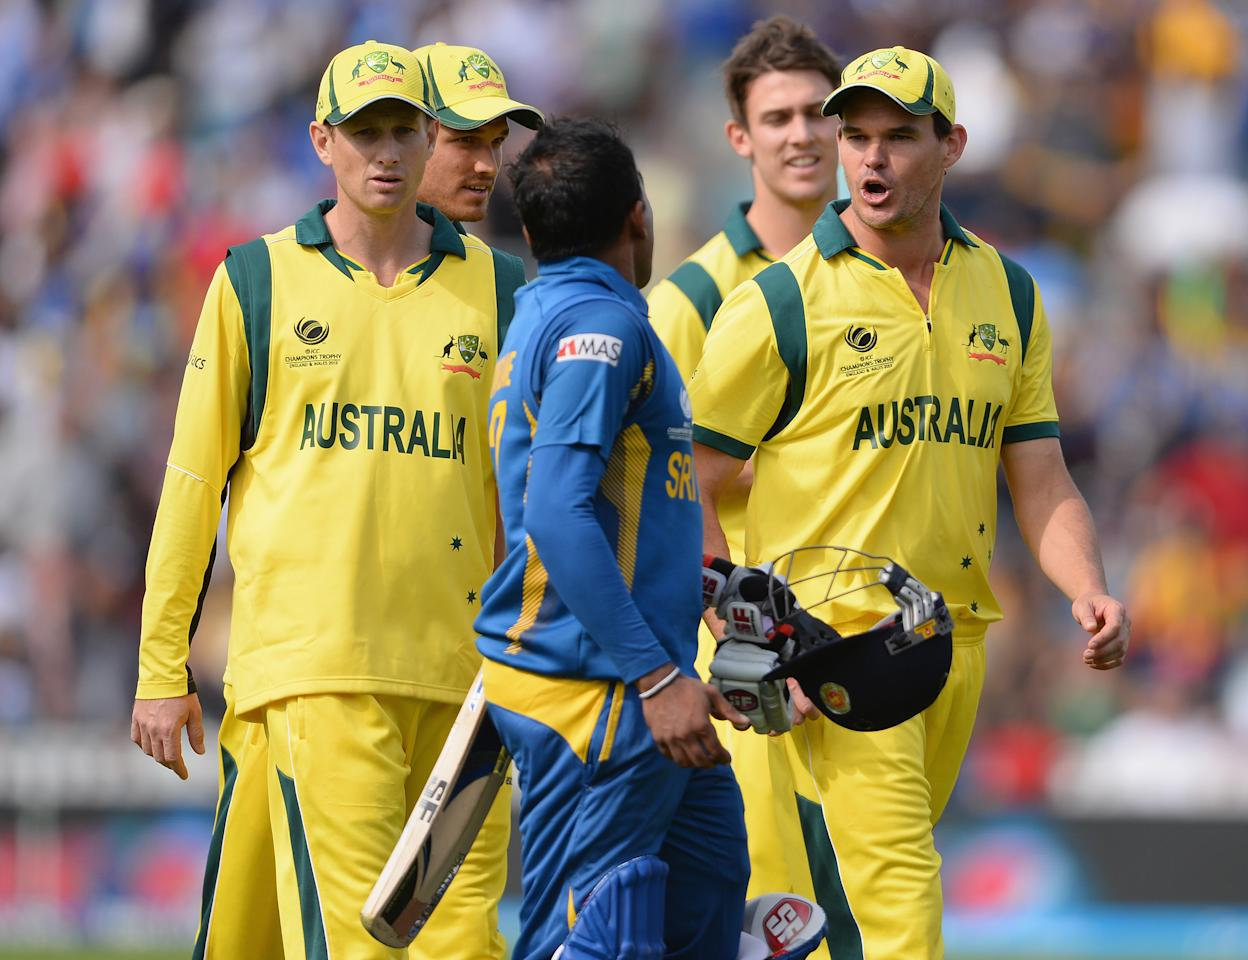 LONDON, ENGLAND - JUNE 17:  Words are exchanged between Clint McKay of Australia and Mahela Jayawardena of Sri Lanka is restrained by the Australian captain George Bailey at the end of the Sri Lankan innings during the ICC Champions Trophy Group A fixture between Sri Lanka and Australia at The Kia Oval on June 17, 2013 in London, England.  (Photo by Mike Hewitt/Getty Images)